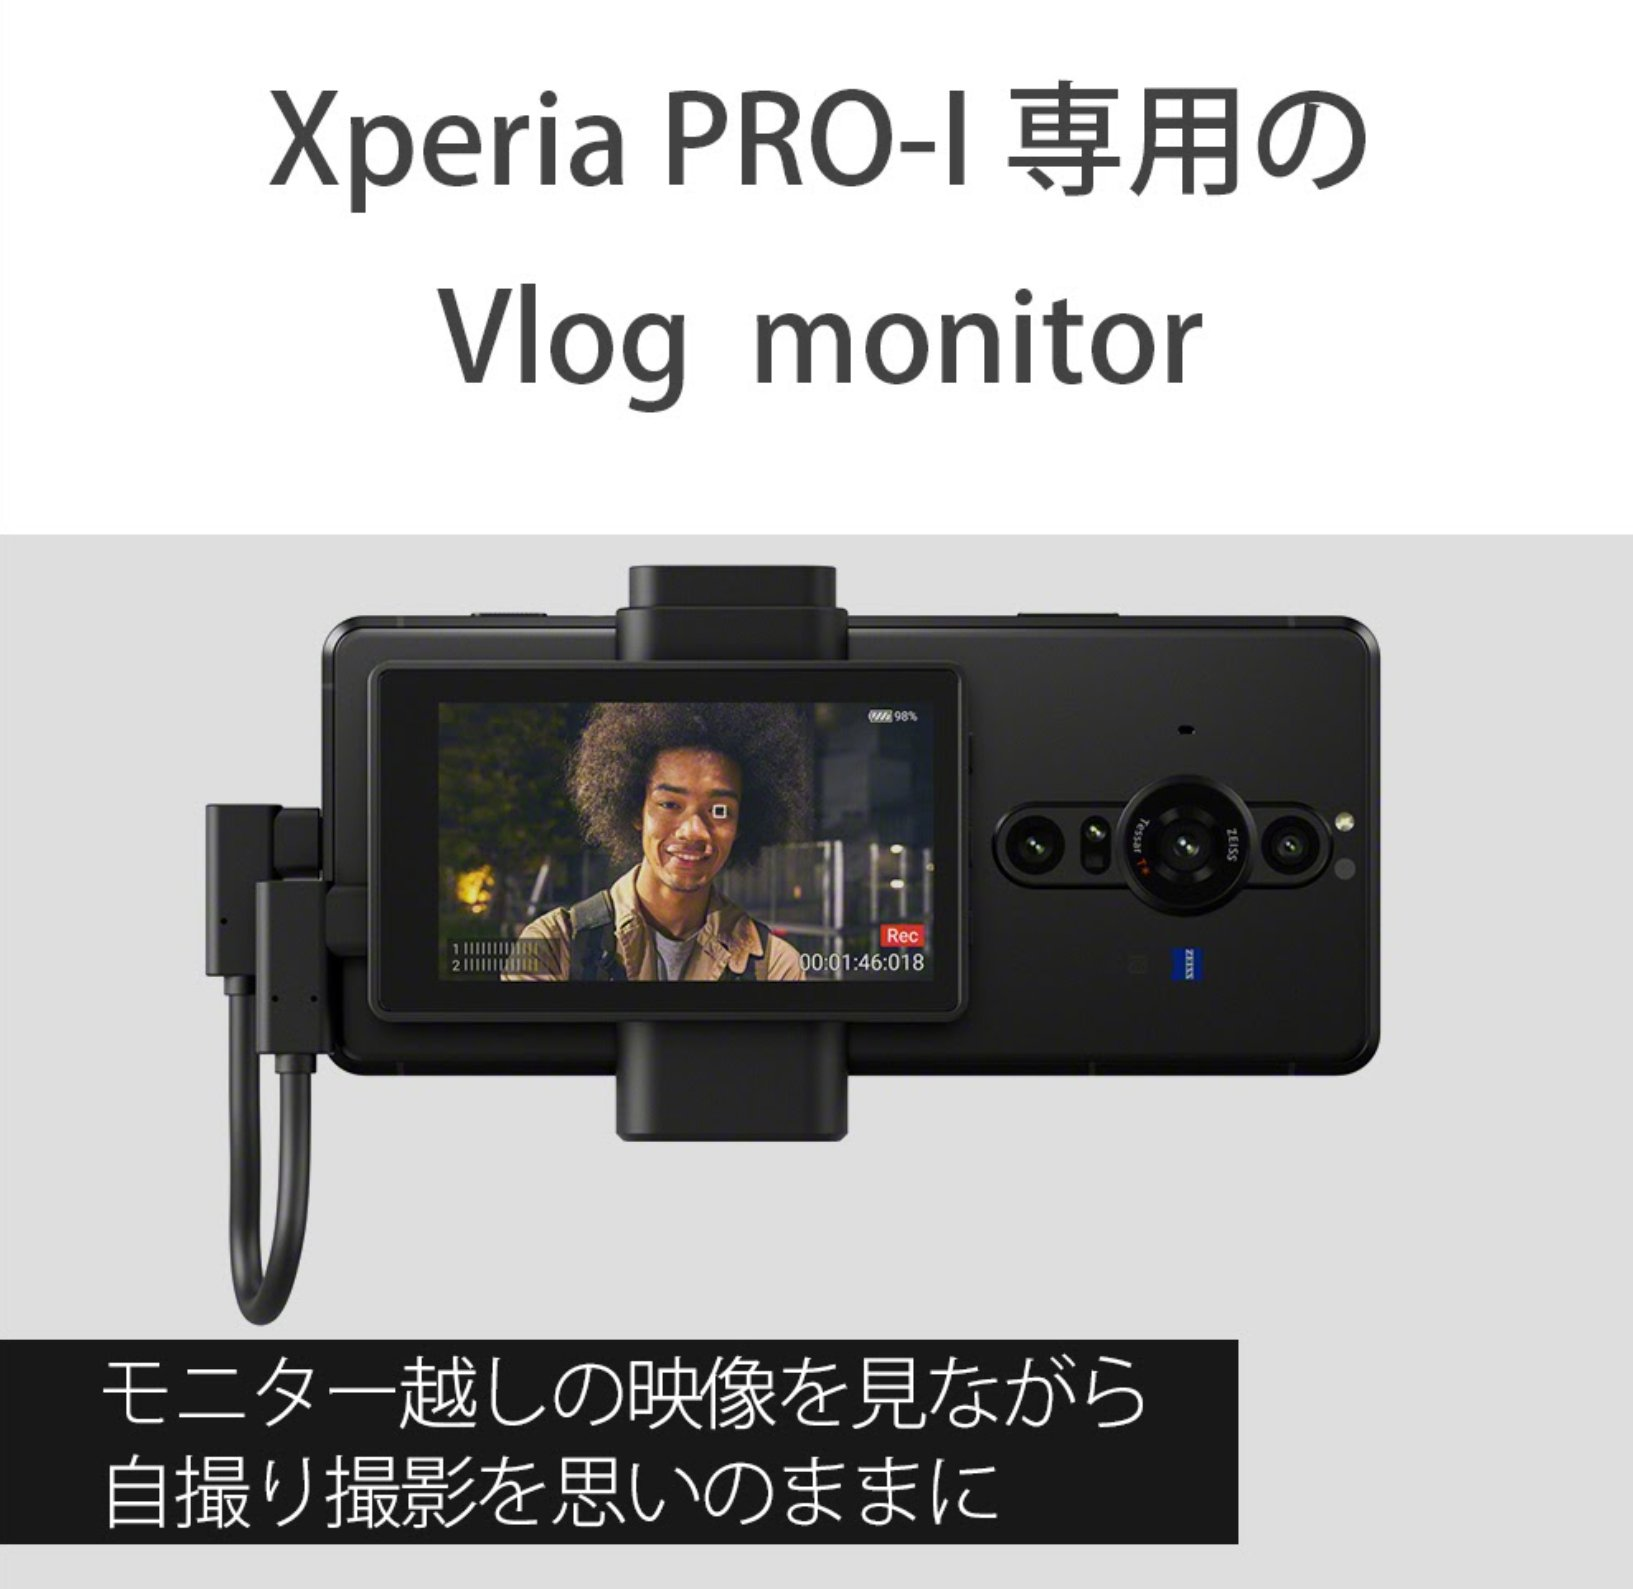 Sony Xperia Pro-1 Leak Reveals Interesting Details About Sony's Upcoming Flagship Phone